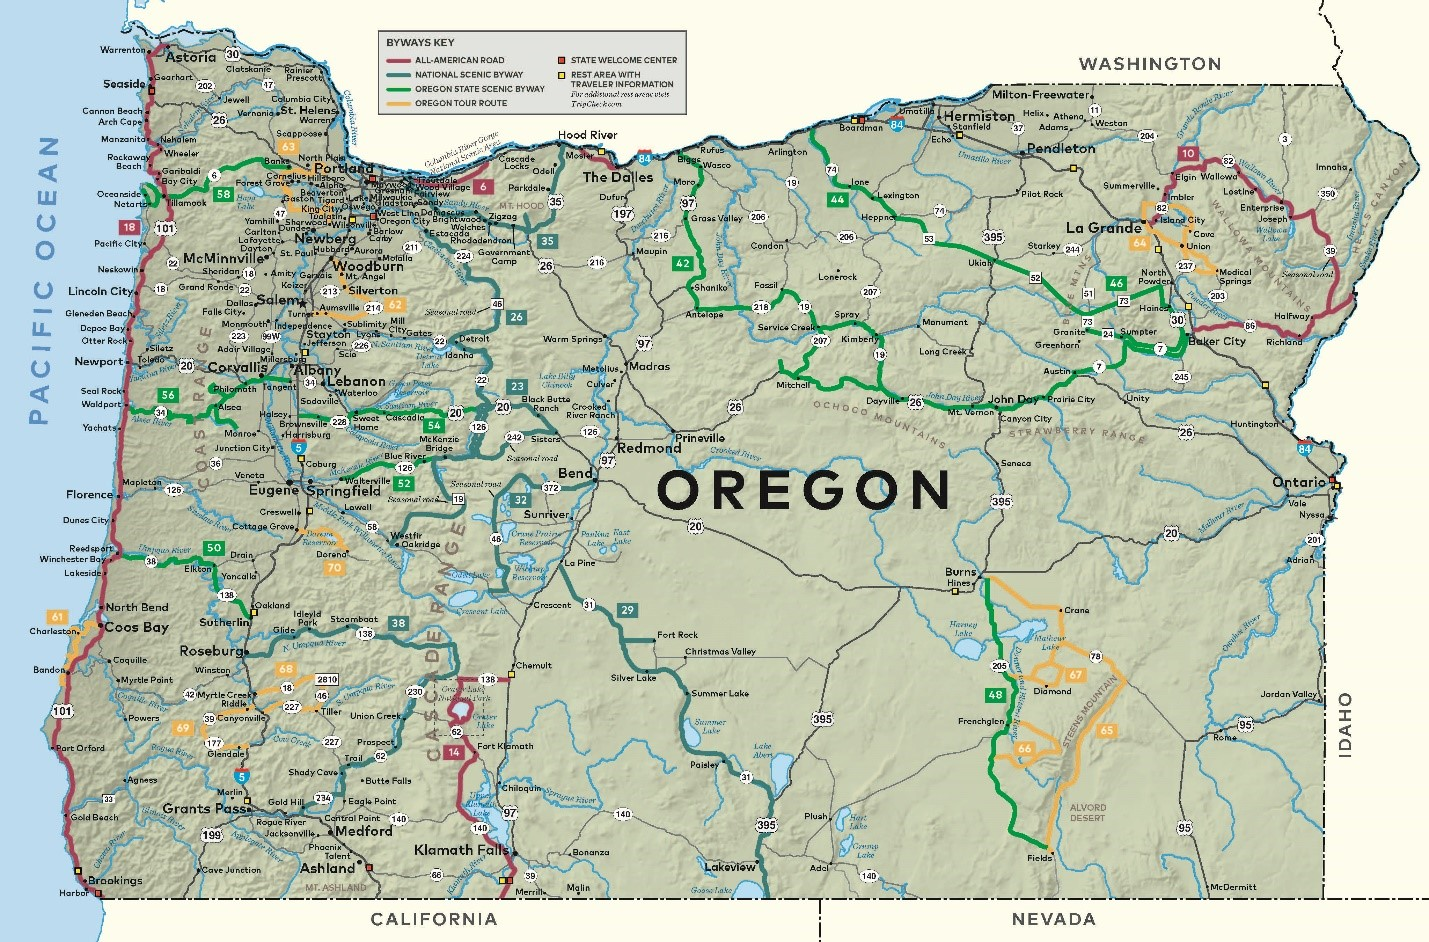 oregon_scenicbyways_map.jpg